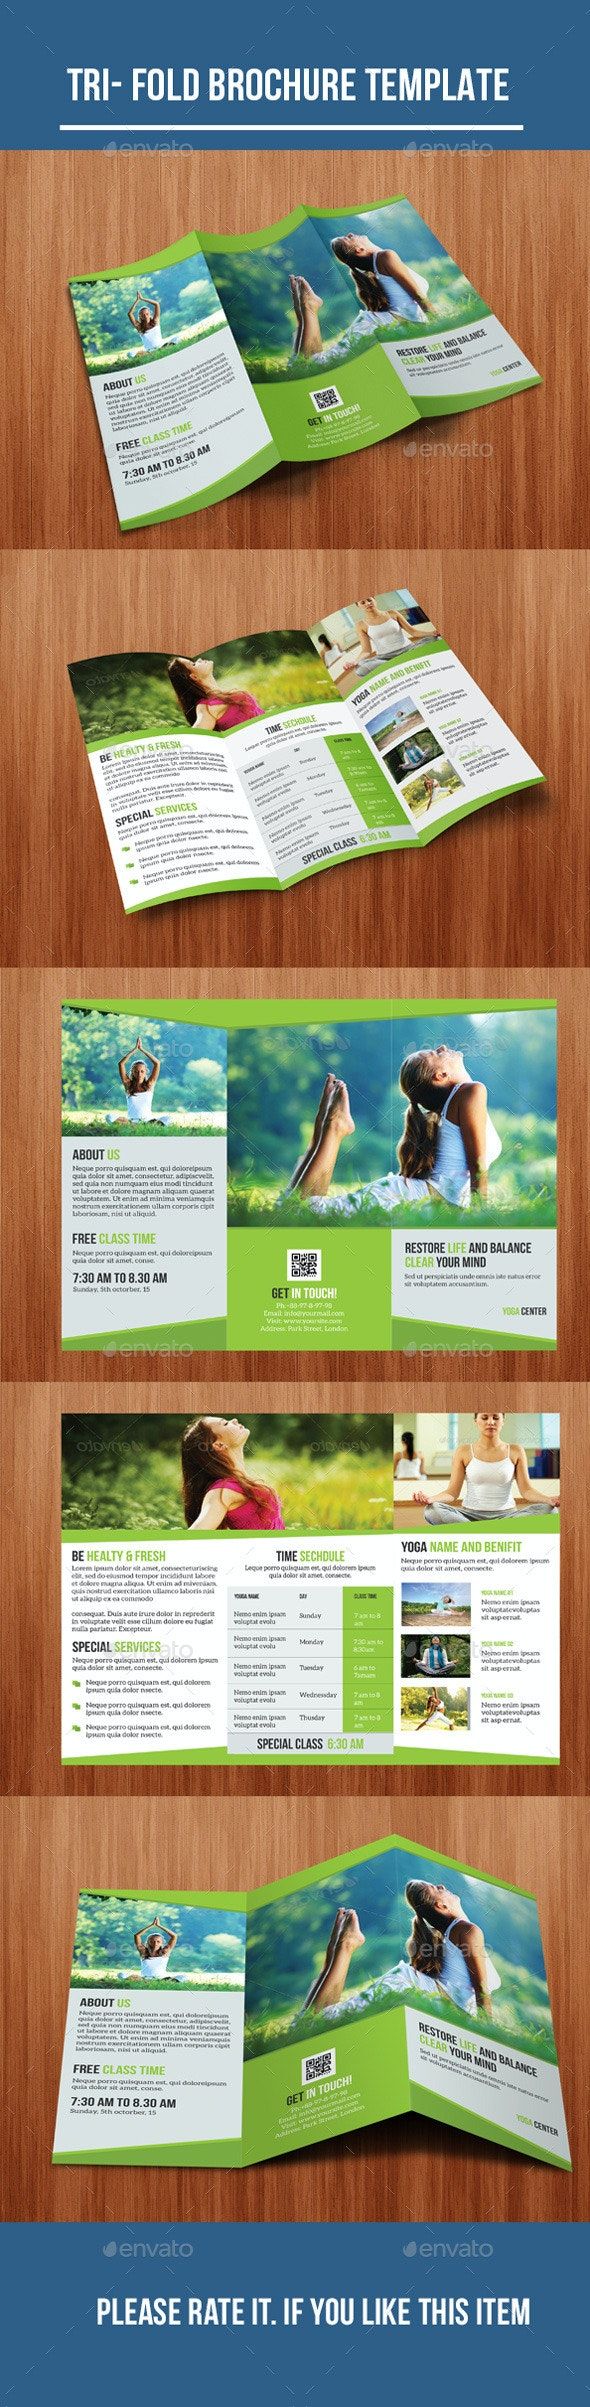 Tri- Fold Yoga Brochure - Corporate Brochures